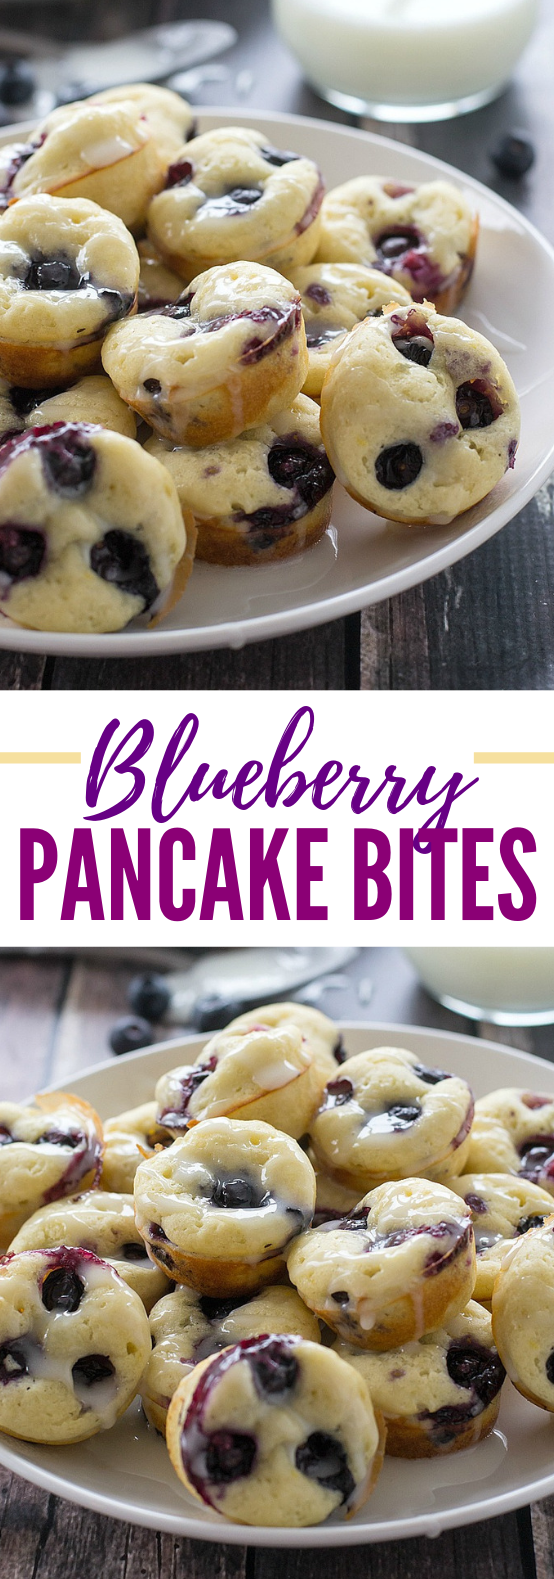 BLUEBERRY PANCAKE BITES #desserts #freezerfriendly